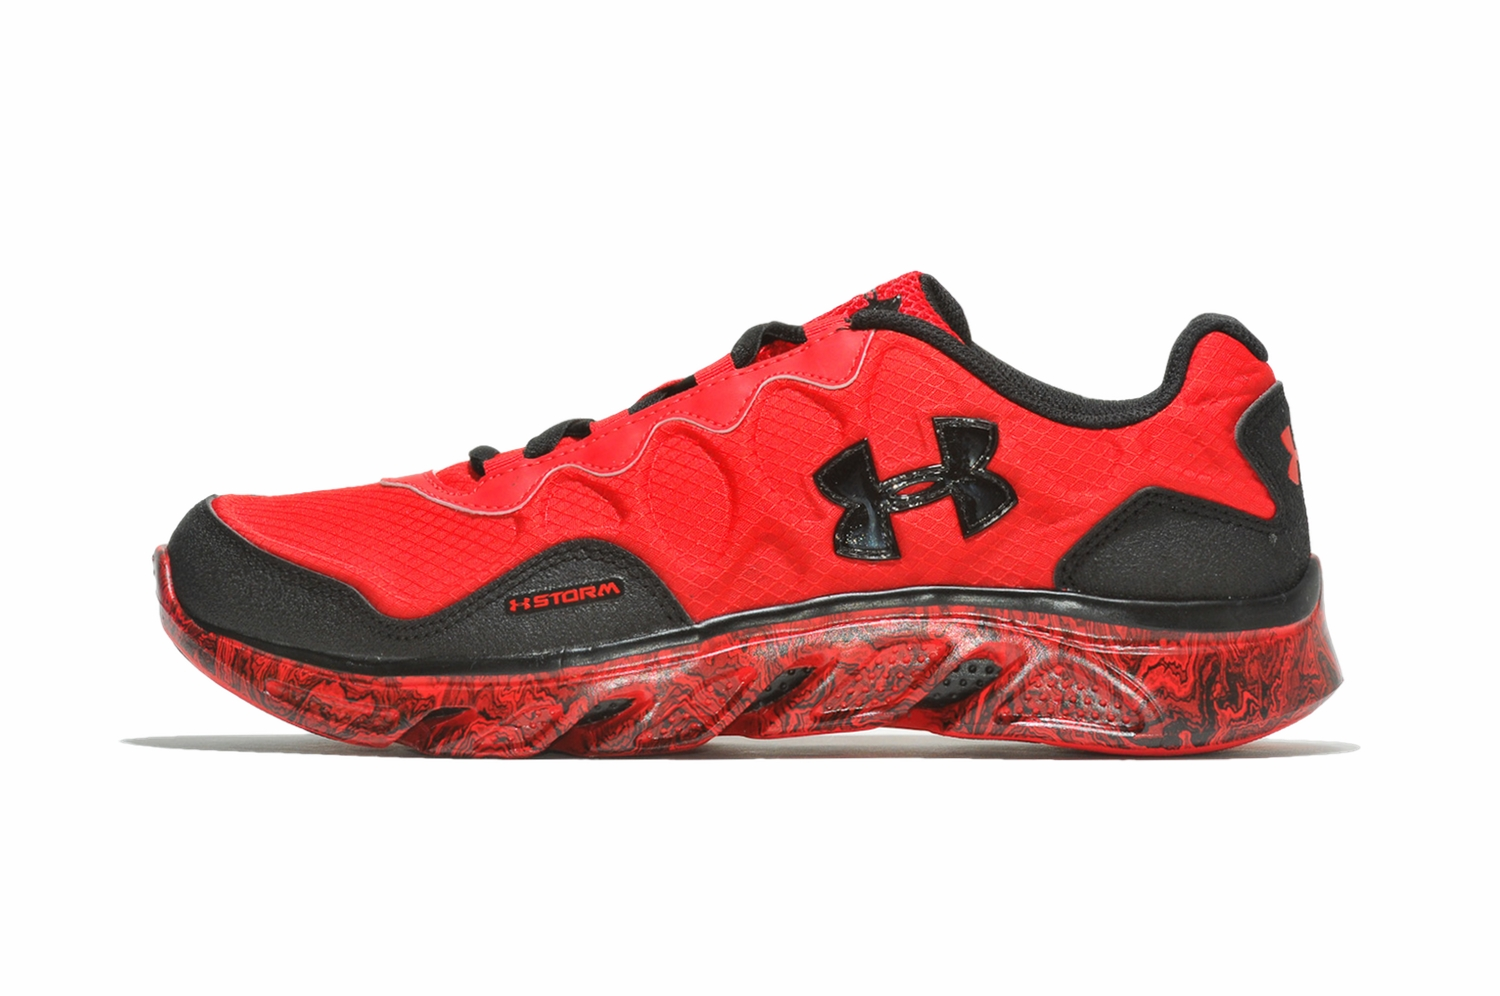 under-armour-spine-rebel-storm-red